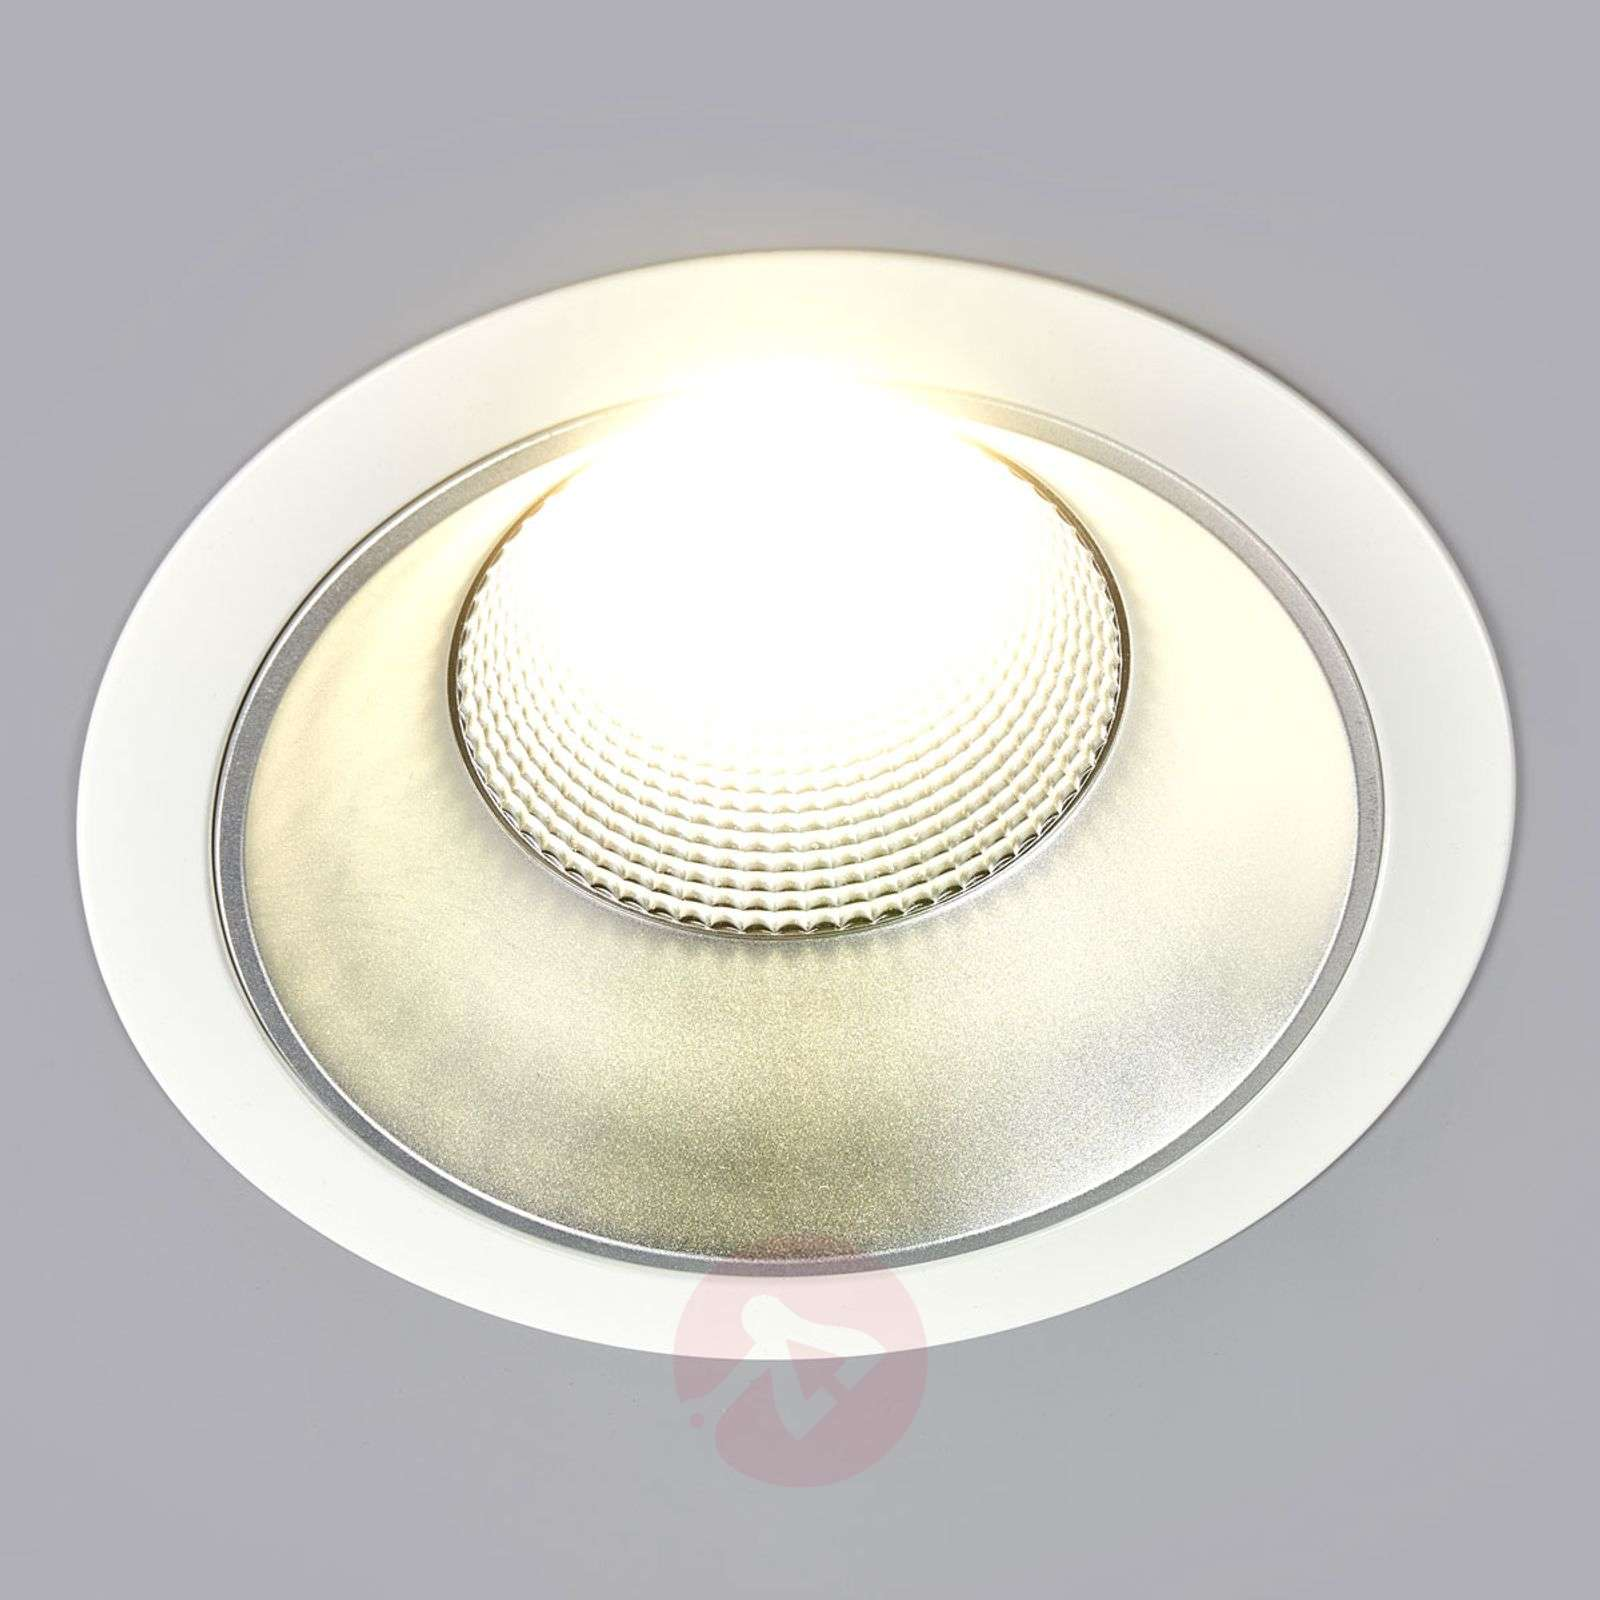 Large, bright Jannis LED downlight-9978044-02